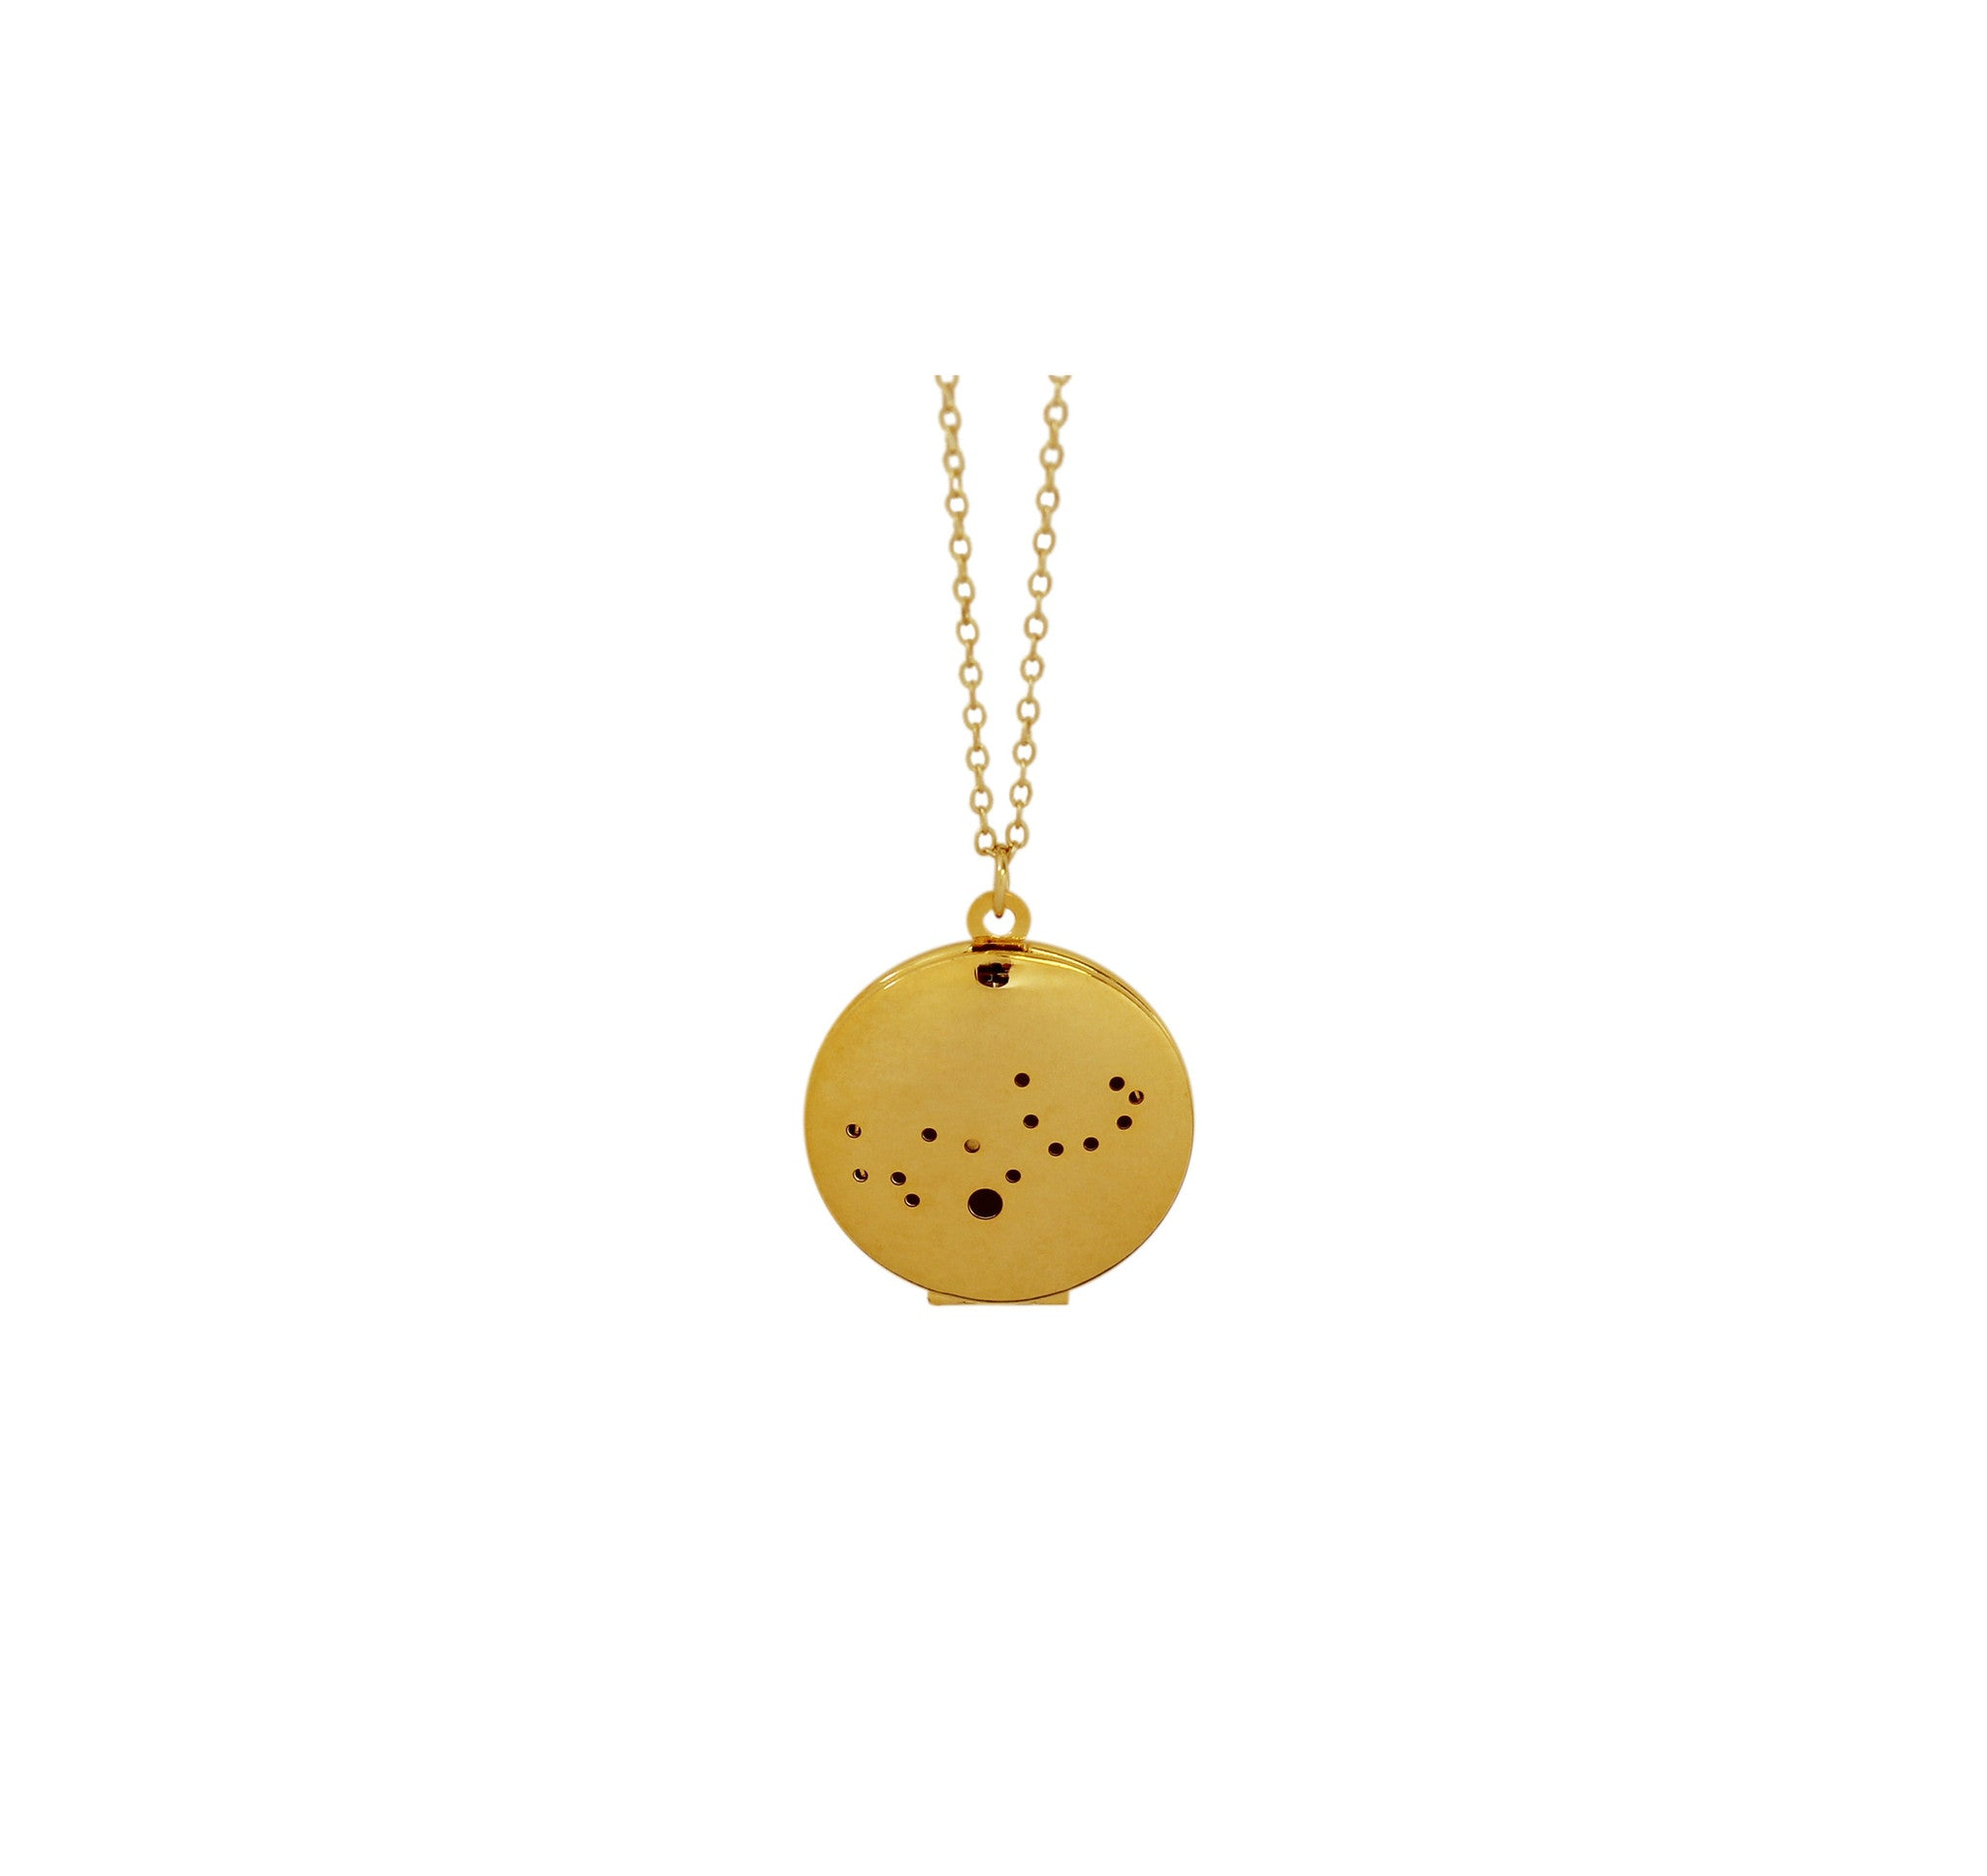 products hollowell horizvirgonecklace collections jewelry name diamond custom constellation logan necklace necklaces virgo